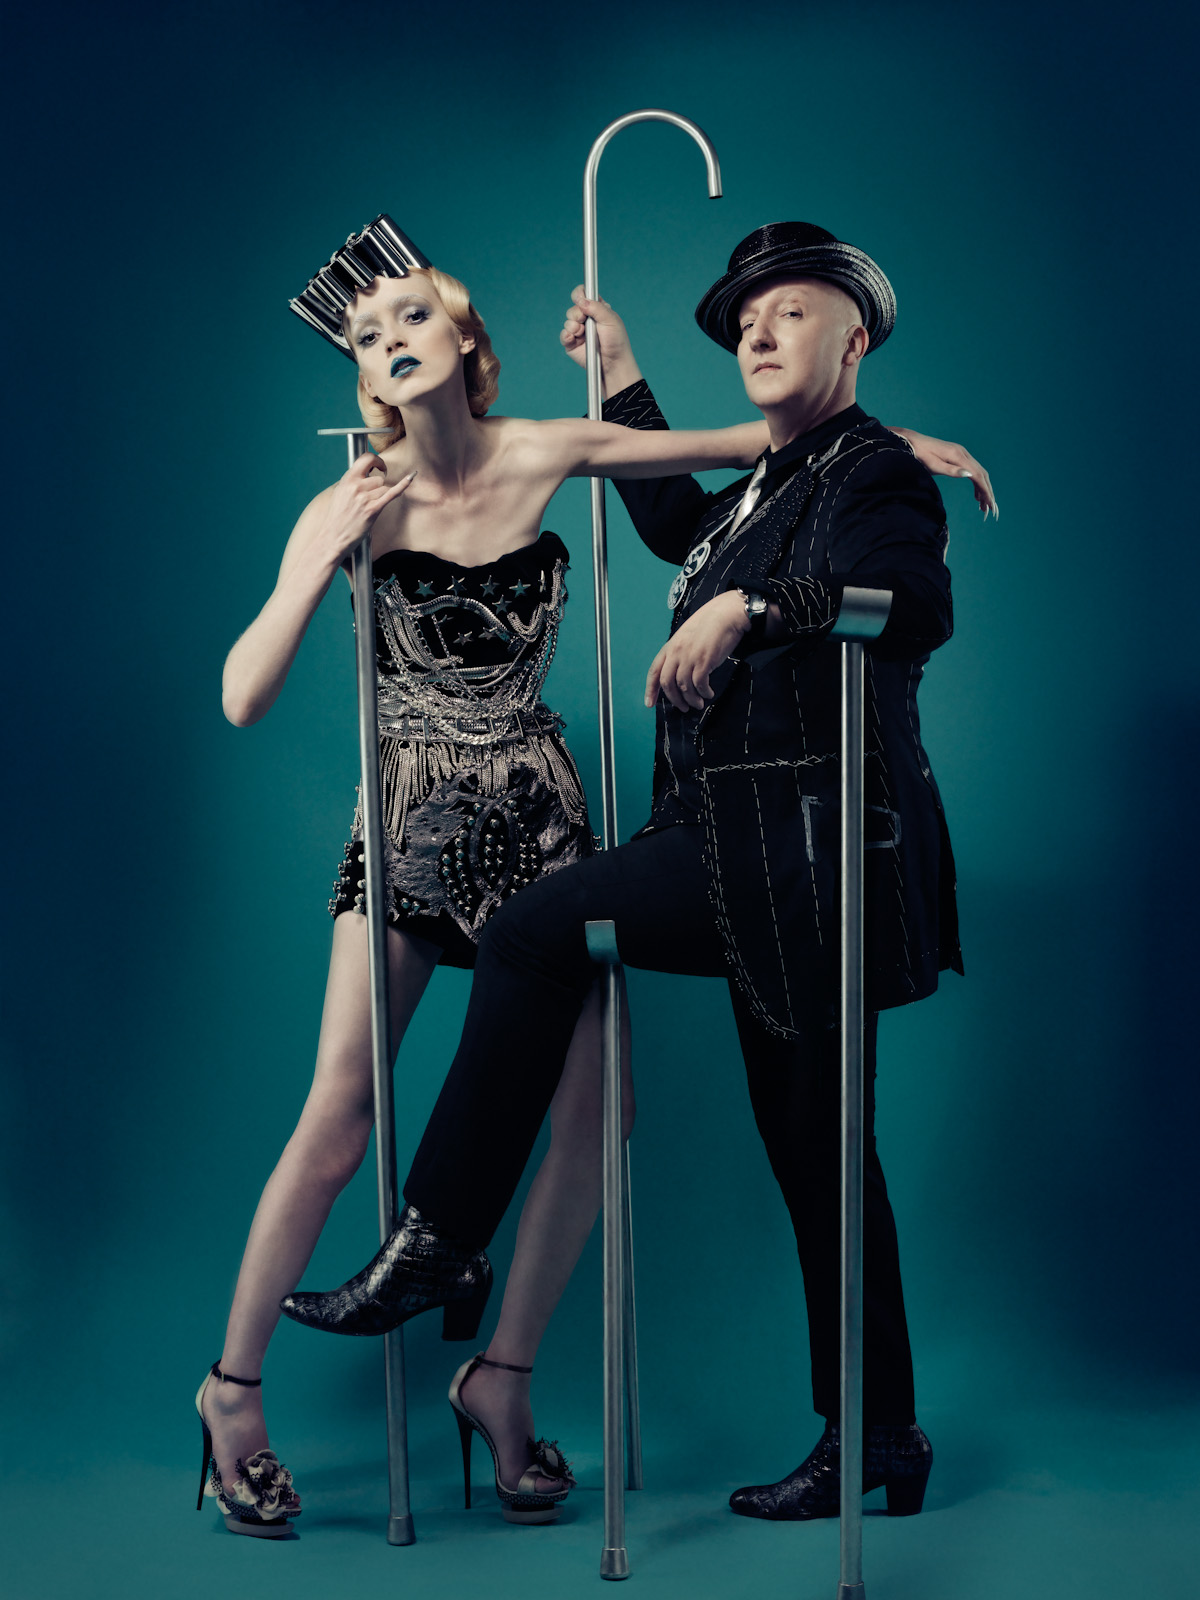 The fabulous Milliner Stephen Jones and his Model / Muse. I always have fond memories looking at this picture . He is such a great guy, and I loved working with him on this shoot. A creative mind, and he keeps pushing the boundaries . Love xx